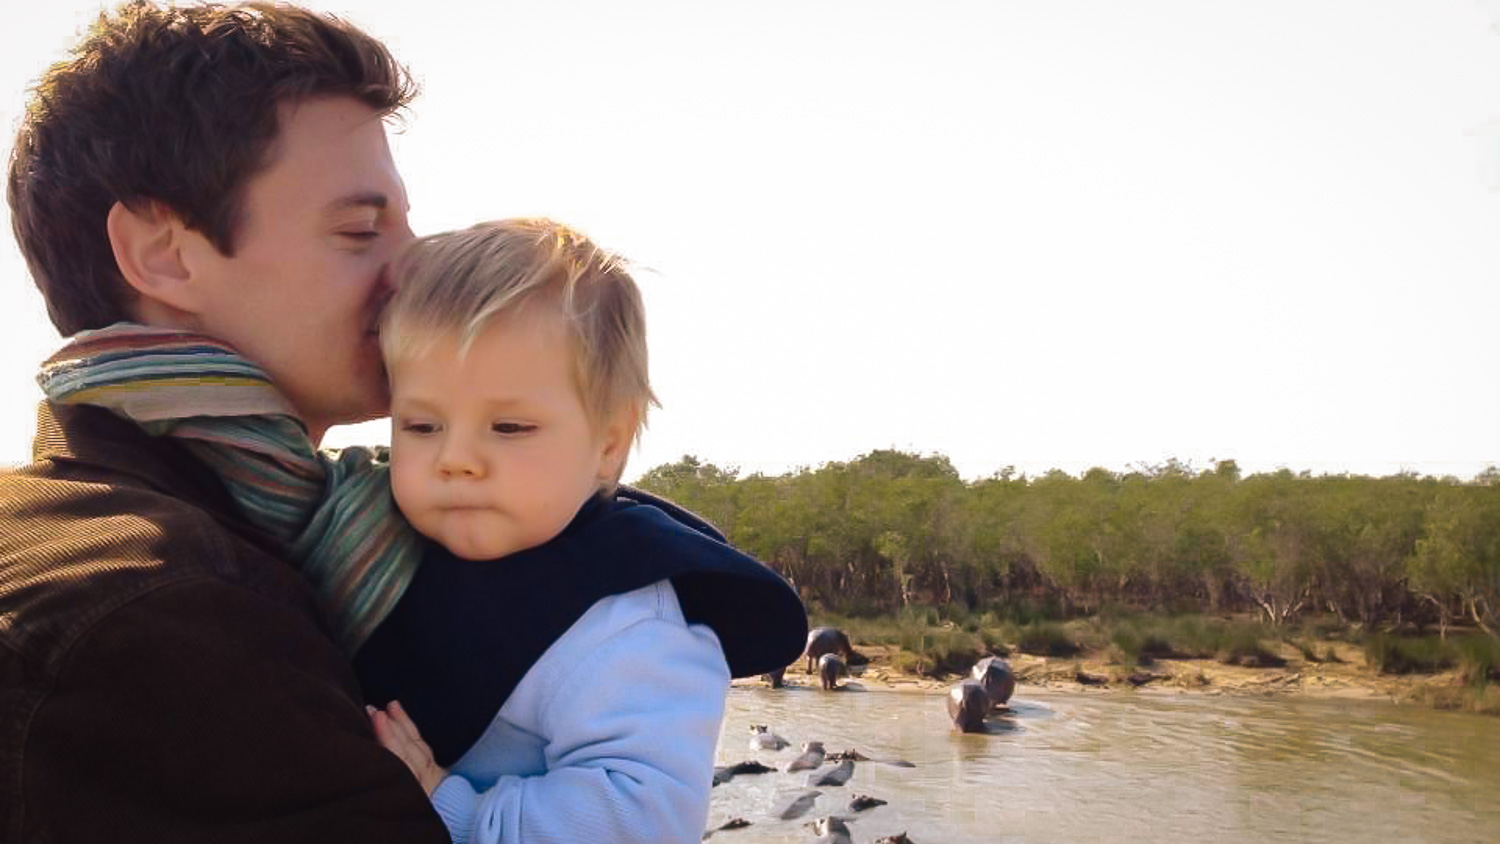 What is paternity leave really like? One father gives an account of his time spent home with his children and how he has learned about the differencing parenting styles around the world.